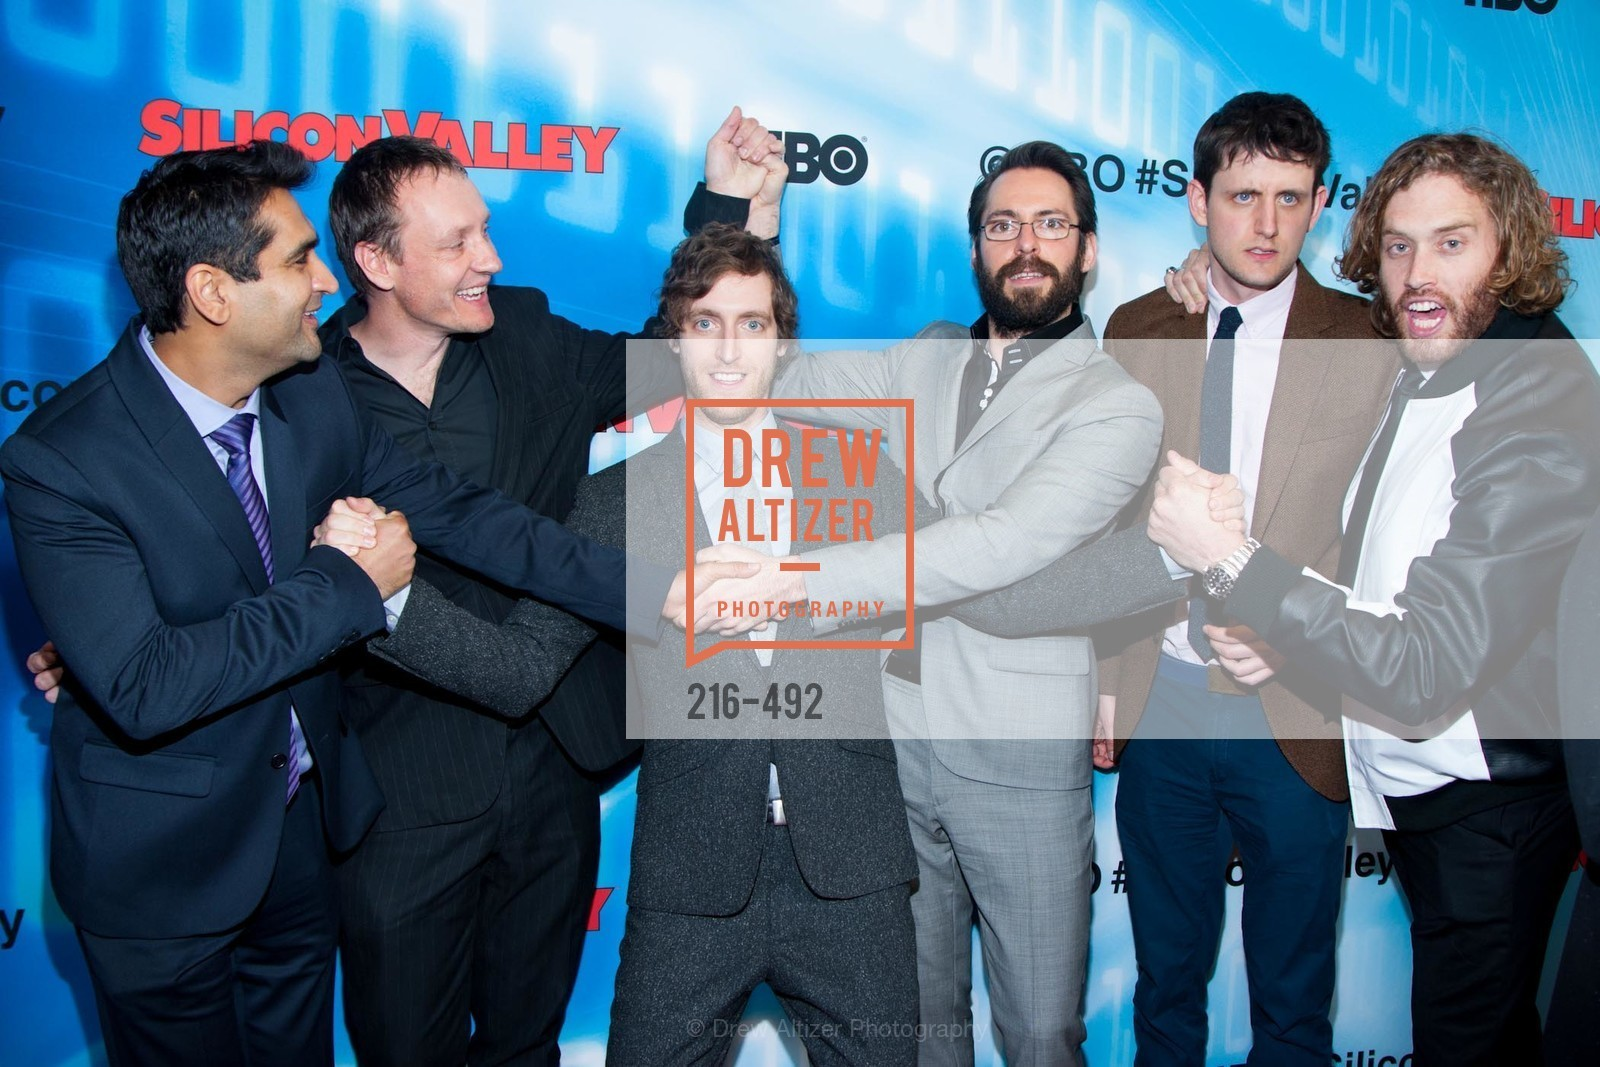 Kumail Nanjiani, Alec Berg, Thomas Middleditch, Martin Starr, Zach Woods, TJ Miller, HBO Original Series 'Silicon Valley' Bay Area Premiere, US. US, April 2nd, 2014,Drew Altizer, Drew Altizer Photography, full-service event agency, private events, San Francisco photographer, photographer California